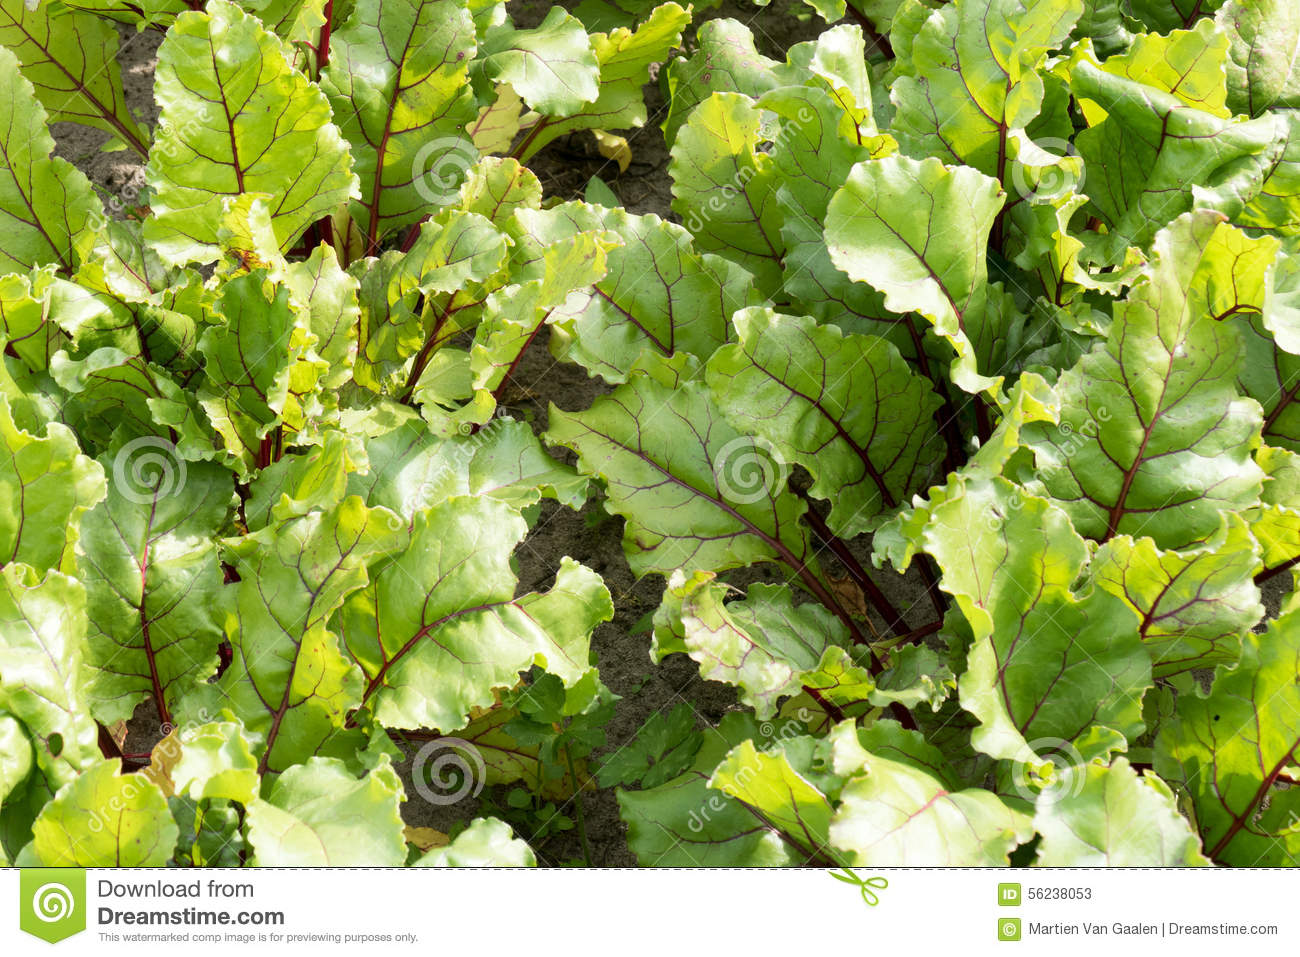 Leaves of beet plants stock photo image 56238053 for Dream plants for the natural garden